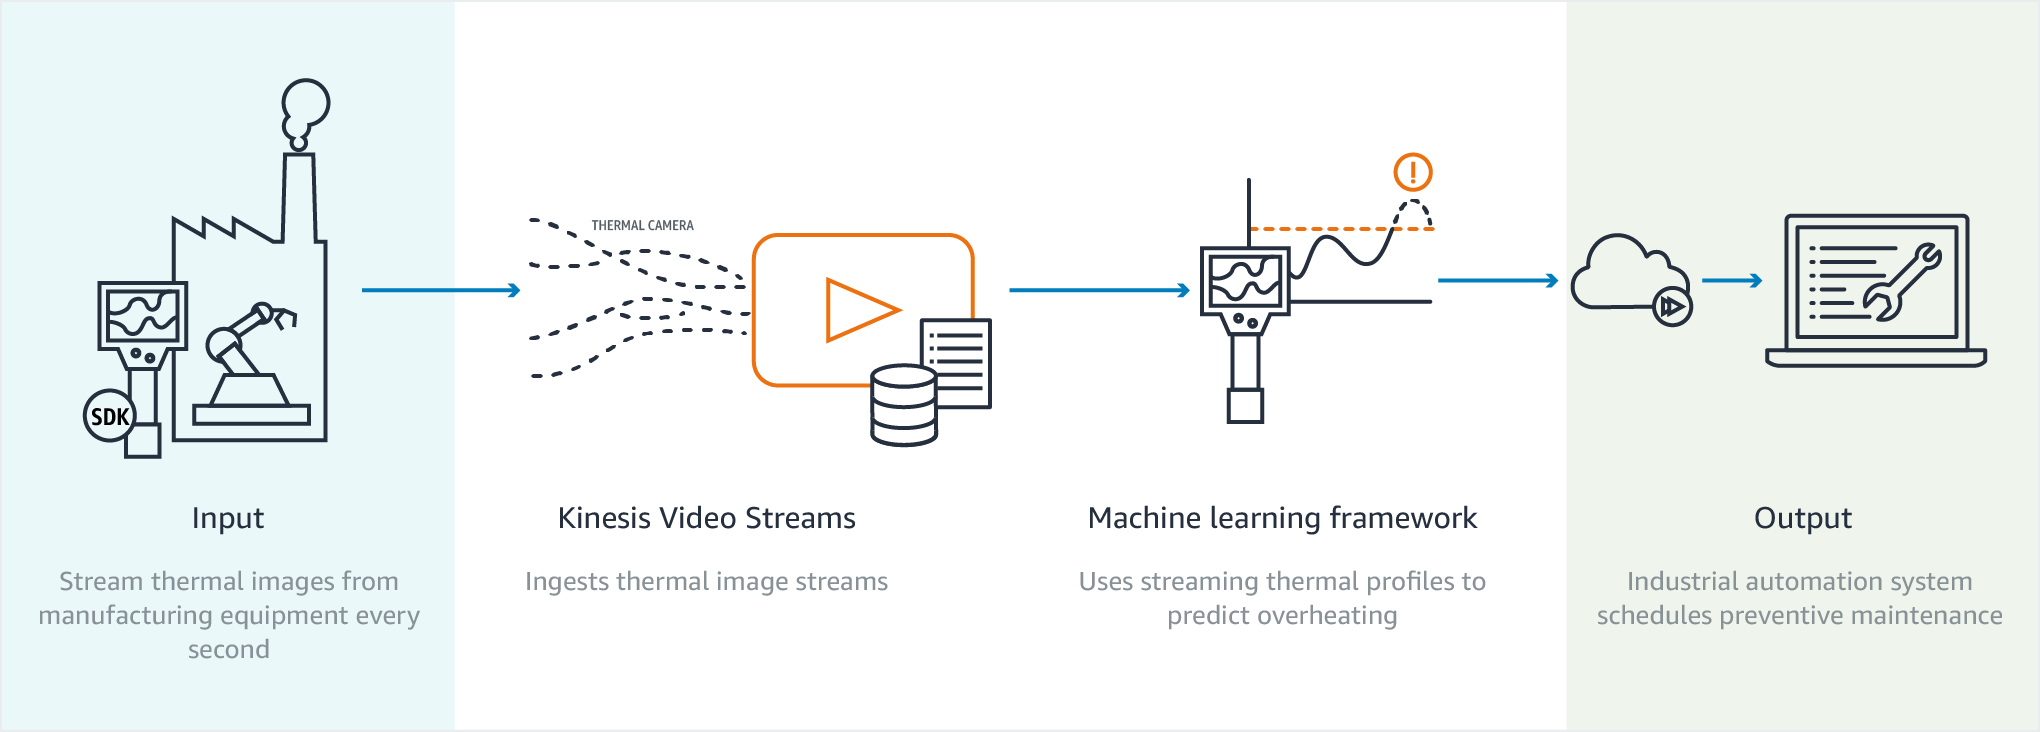 diagram-kinesis-video-streams-thermal-camera-use-case